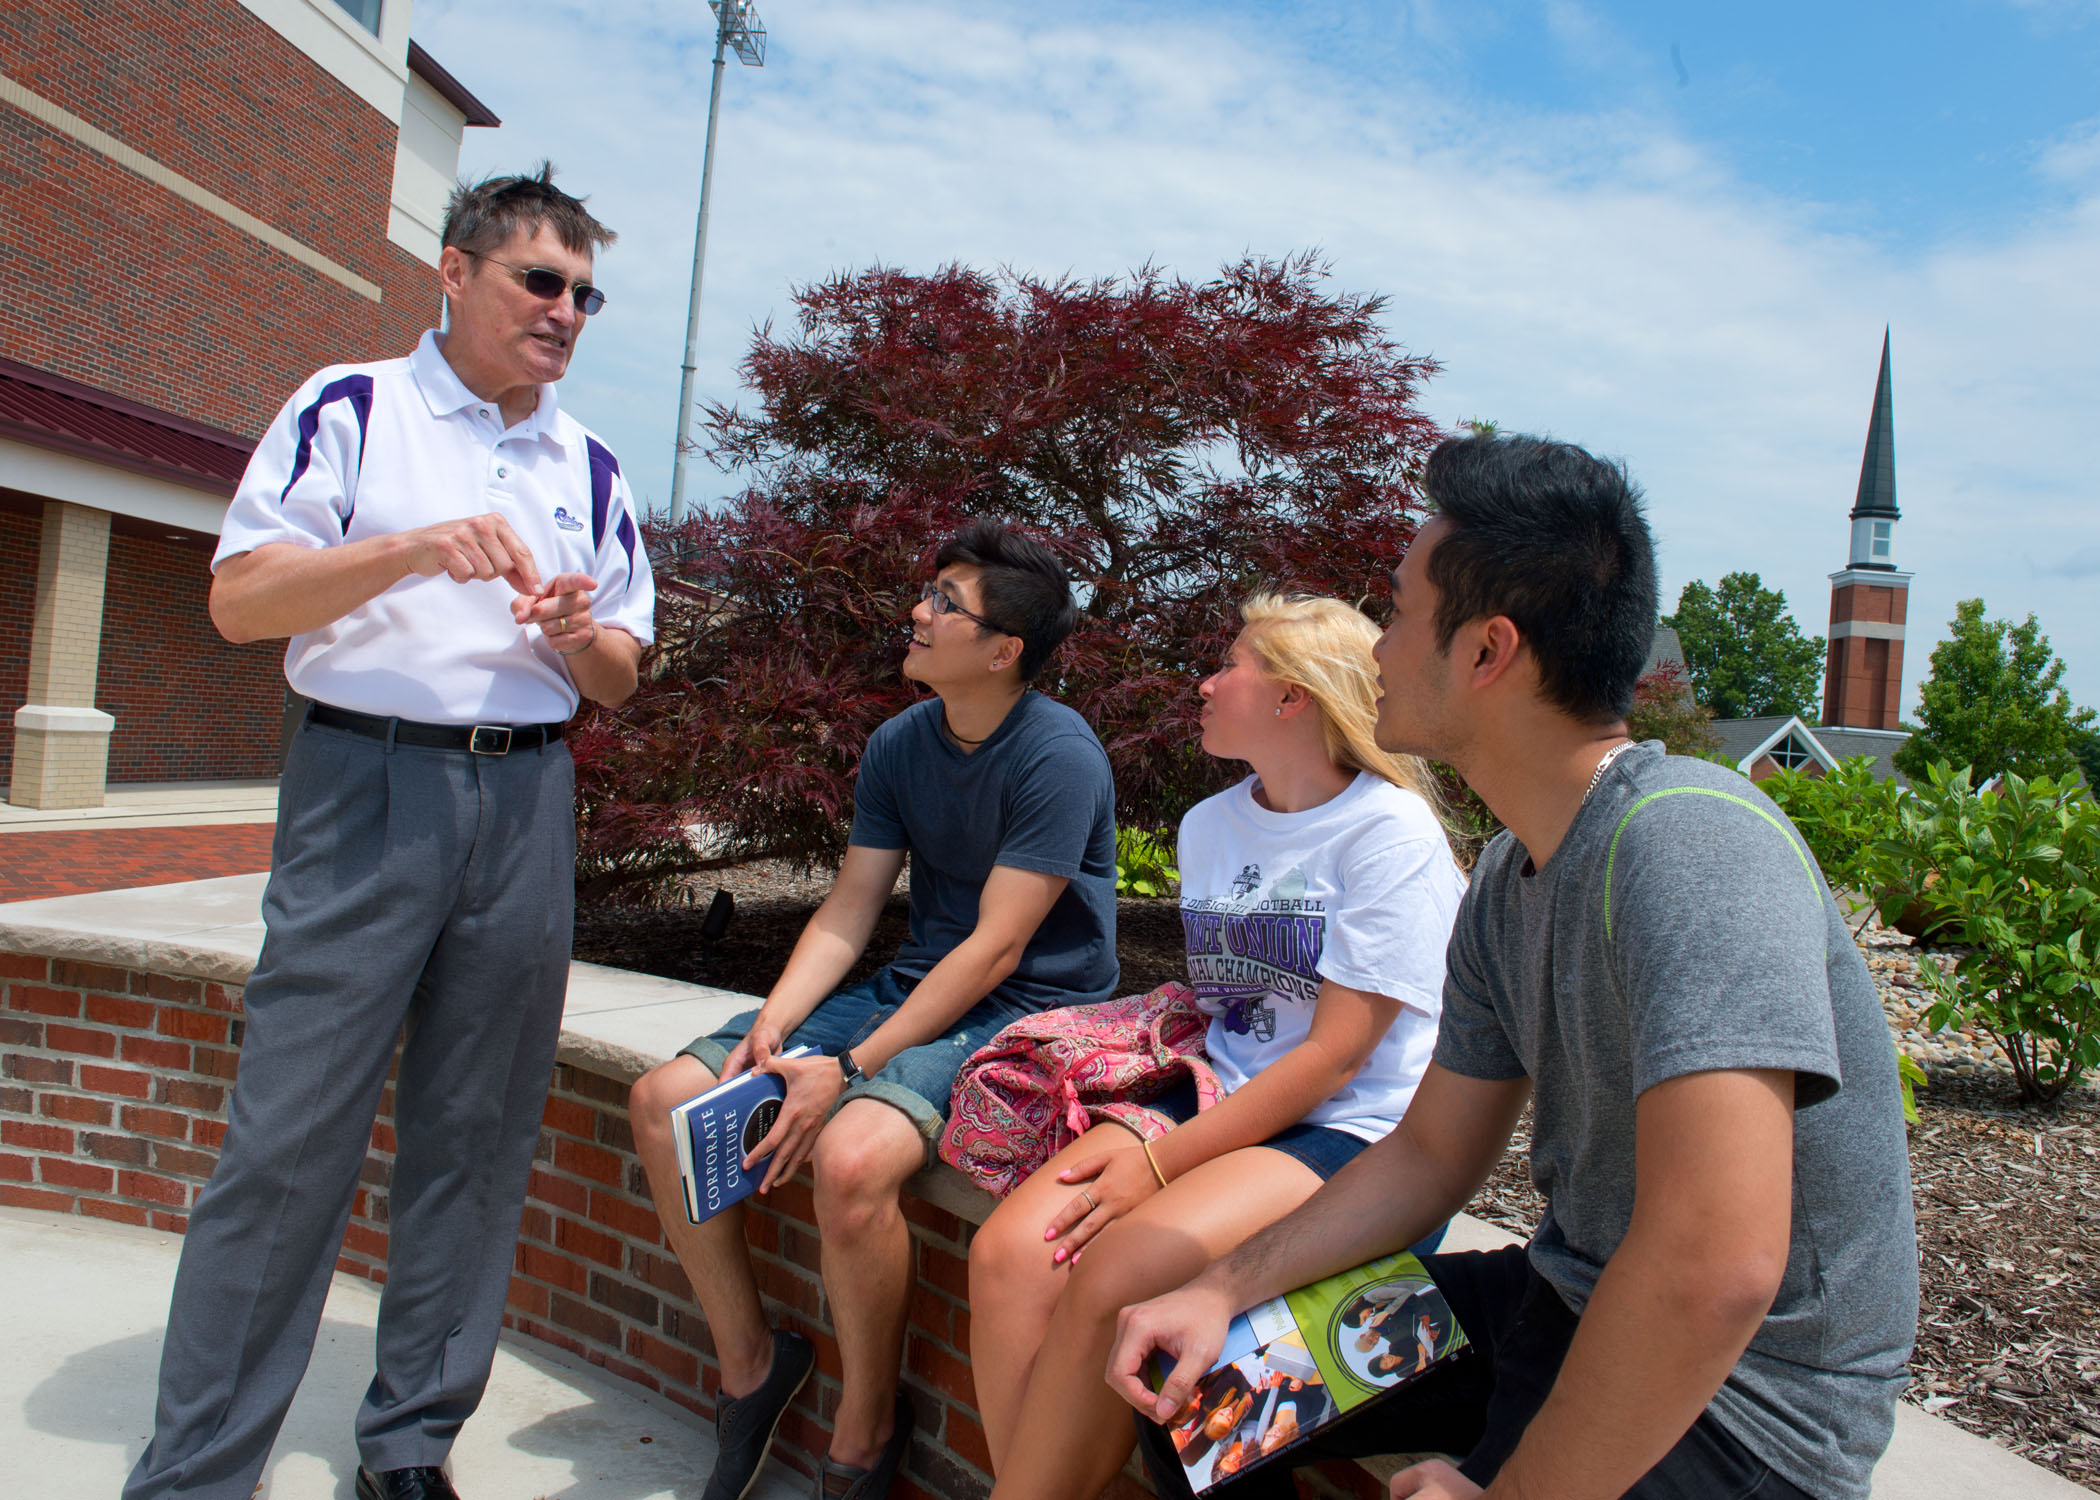 University of Mount Union students and professor gathered on campus